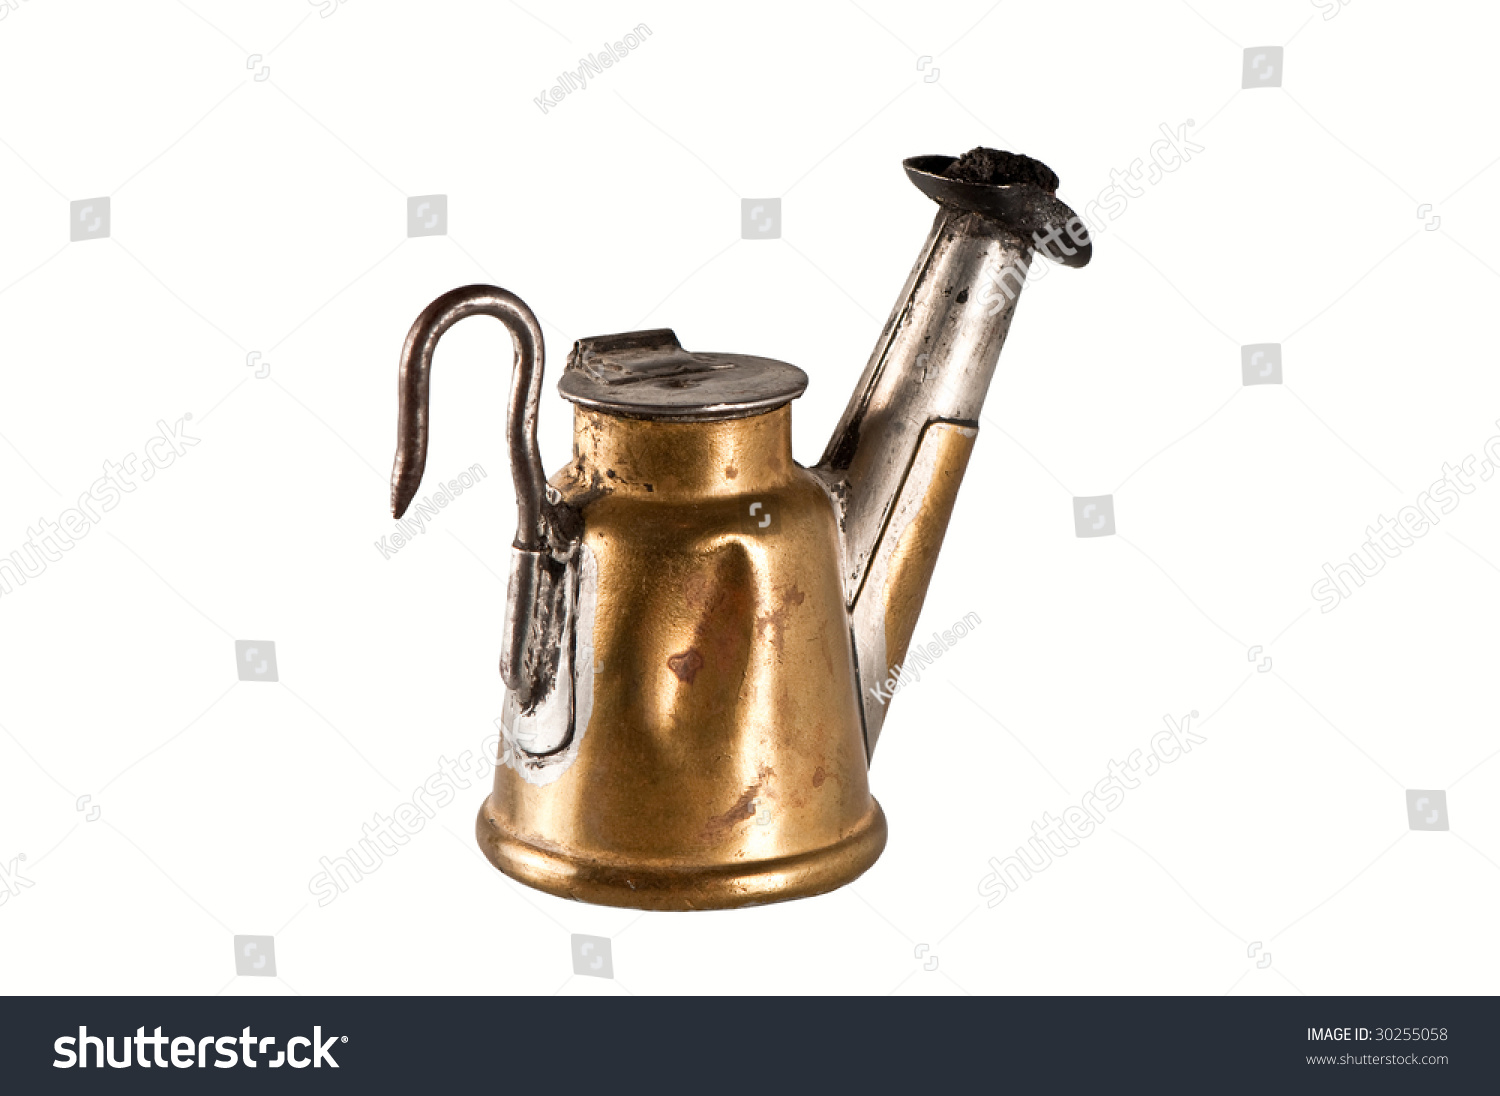 Antique Teapot Miners Lamp Isolated Stock Photo 30255058